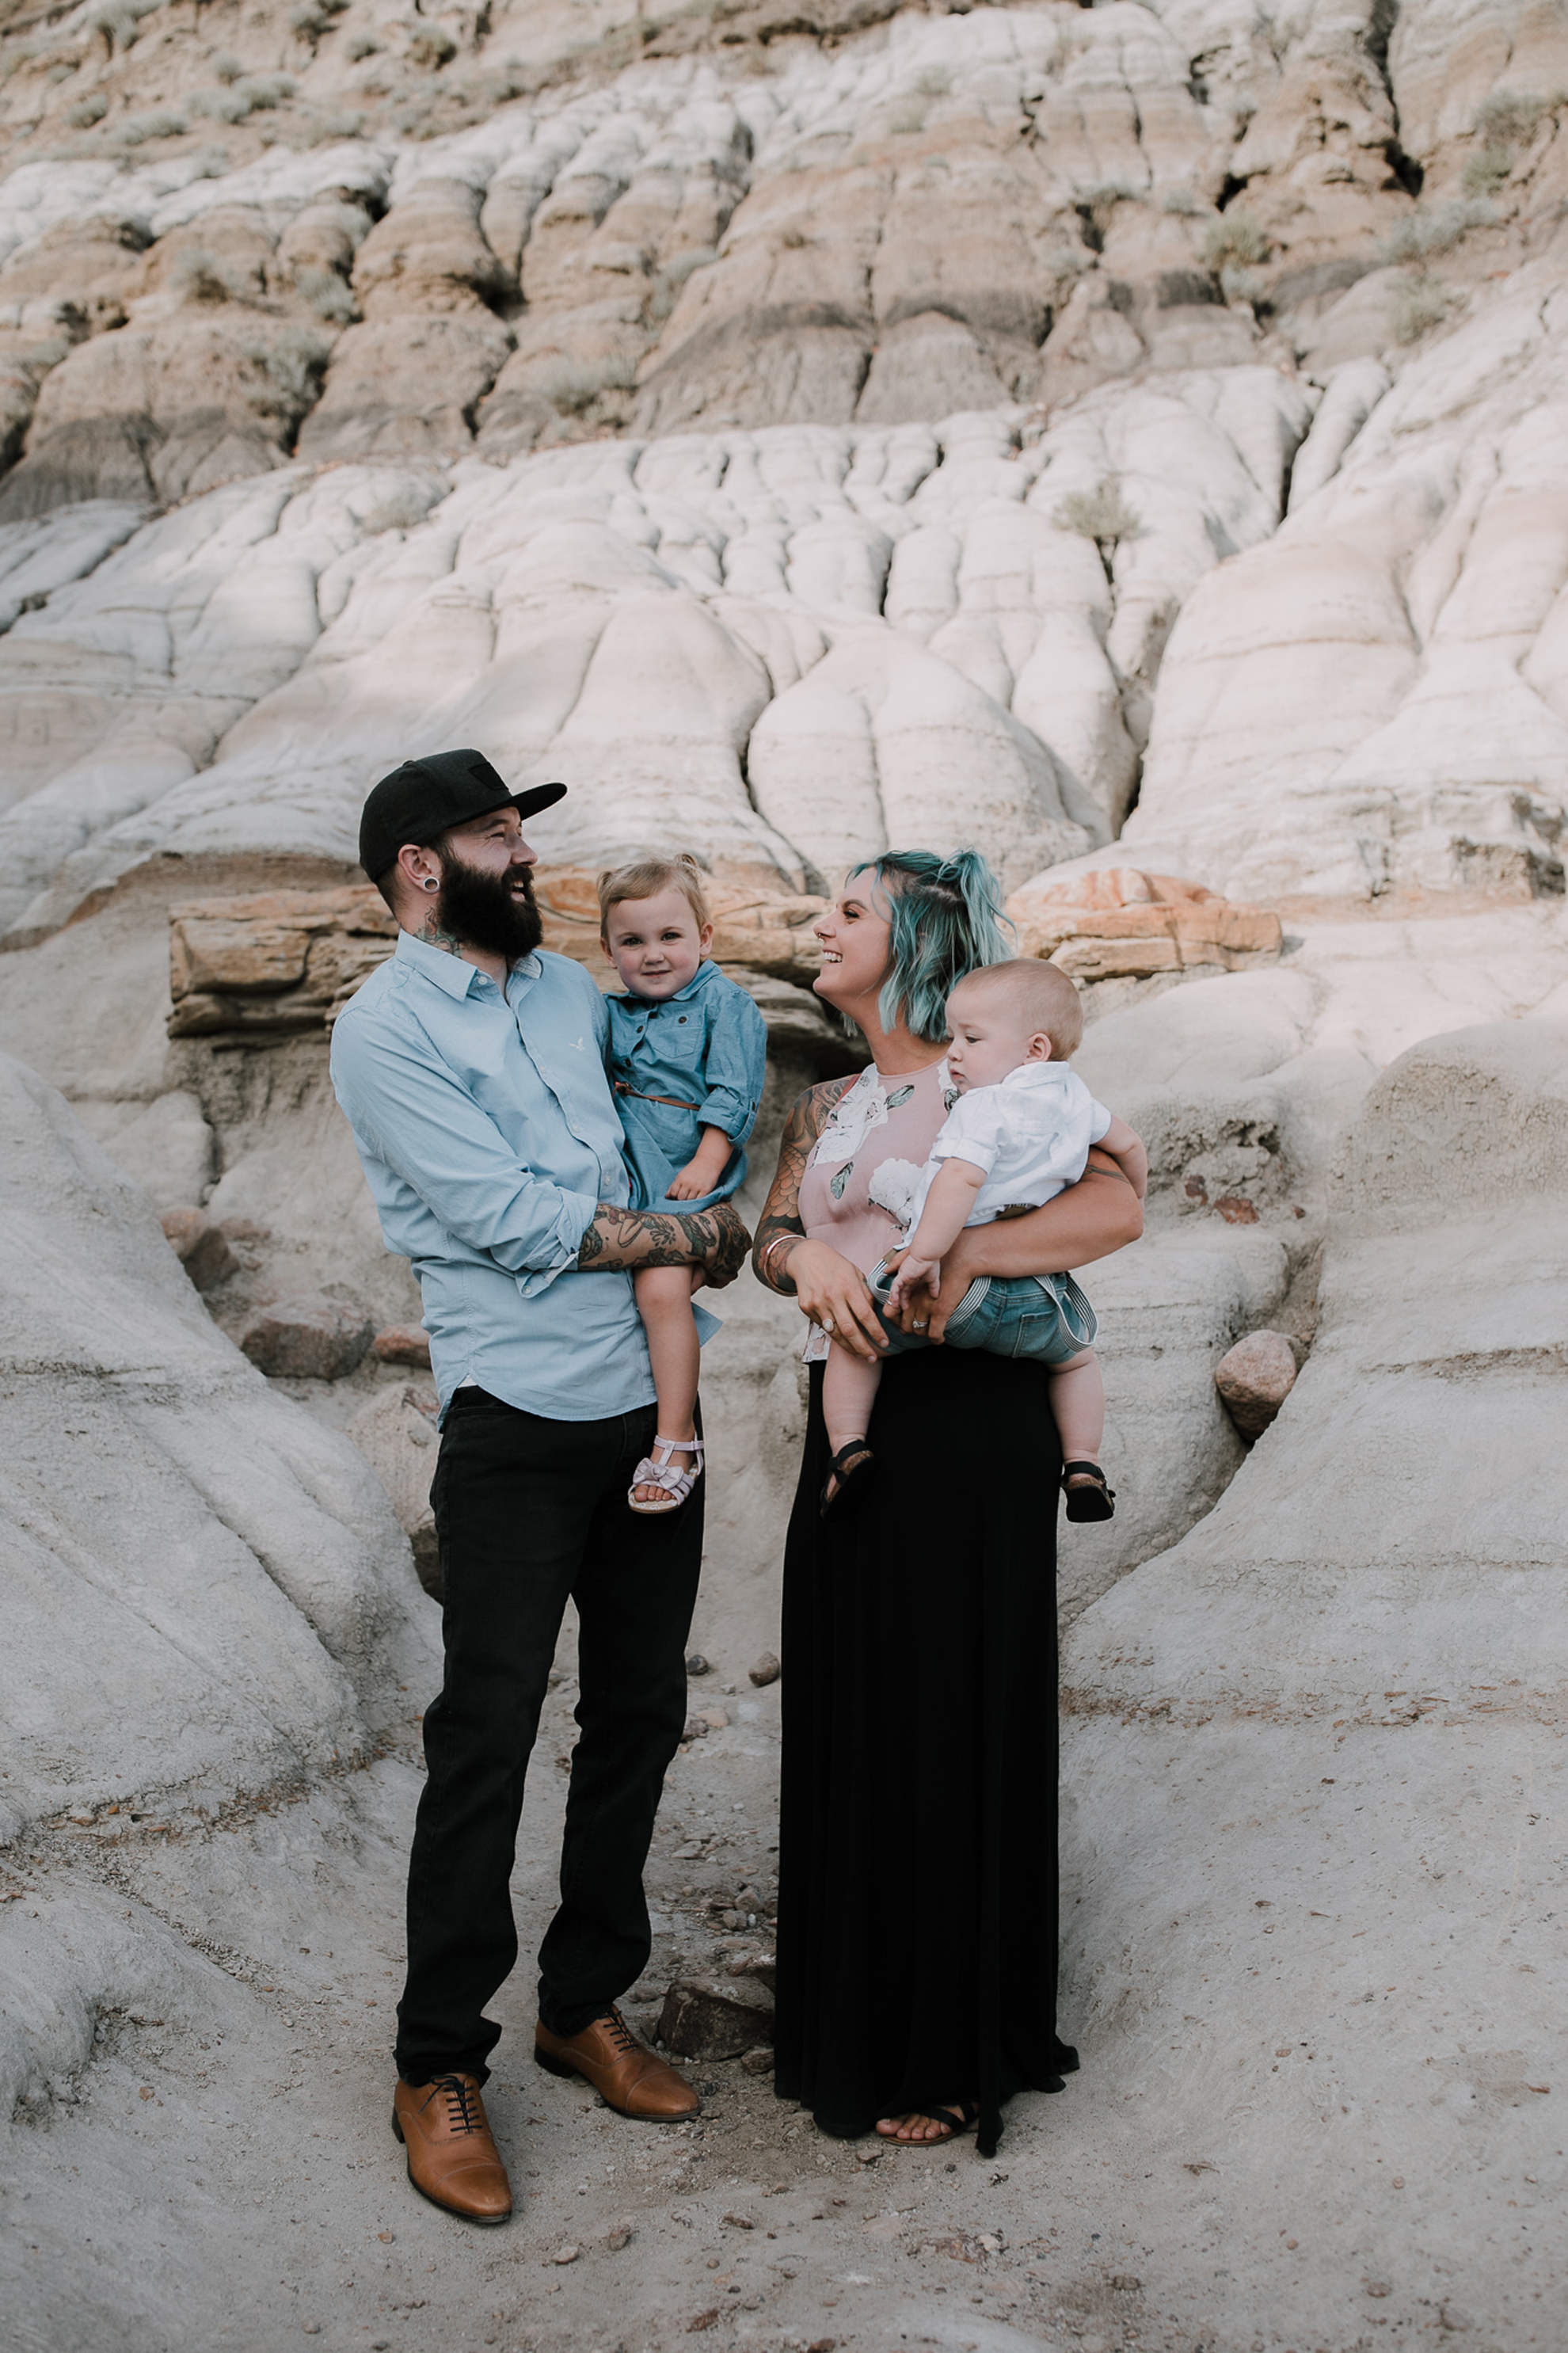 Drumheller Family Connection Session   Brooker Family, Drumheller Family Photography   ©The Paper Deer Photography   paperdeerphoto.com, Alberta Family Photographer, Banff Family Photographer